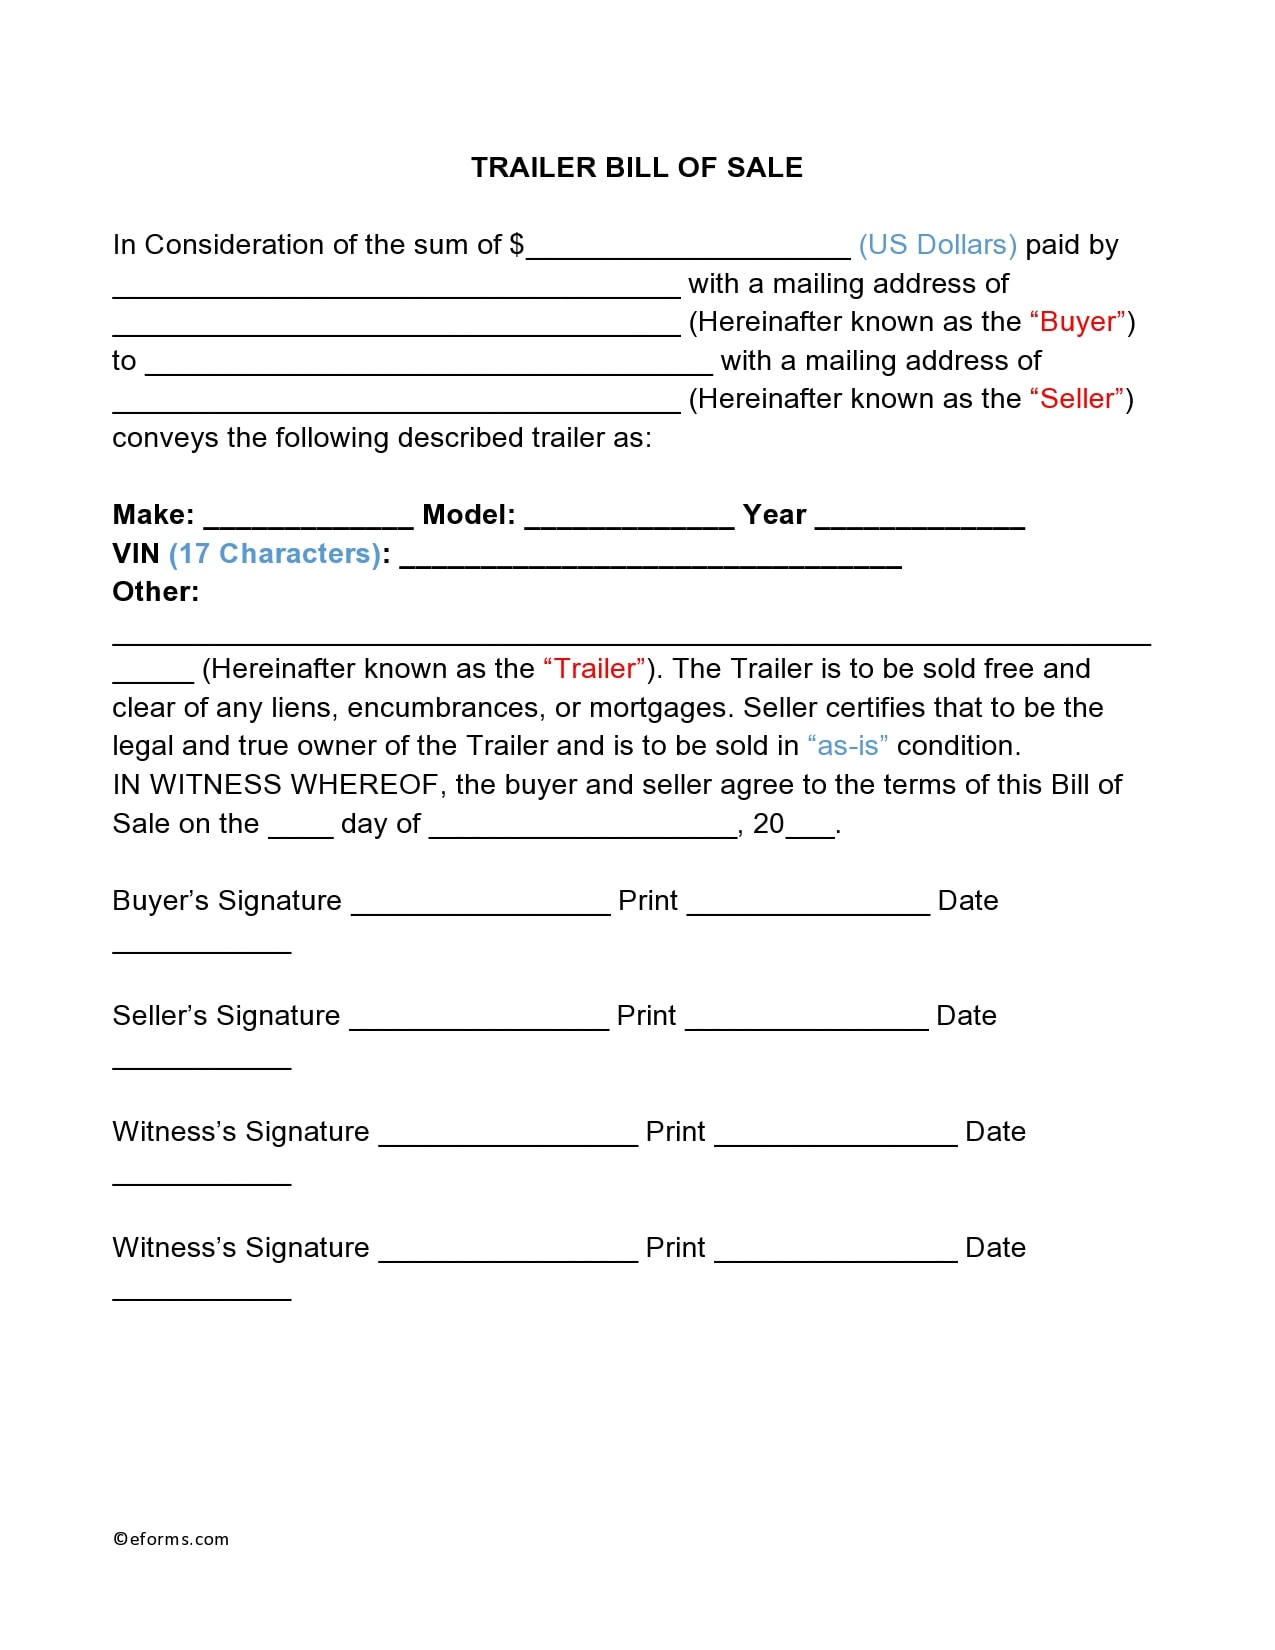 bill of sale for trailer 01